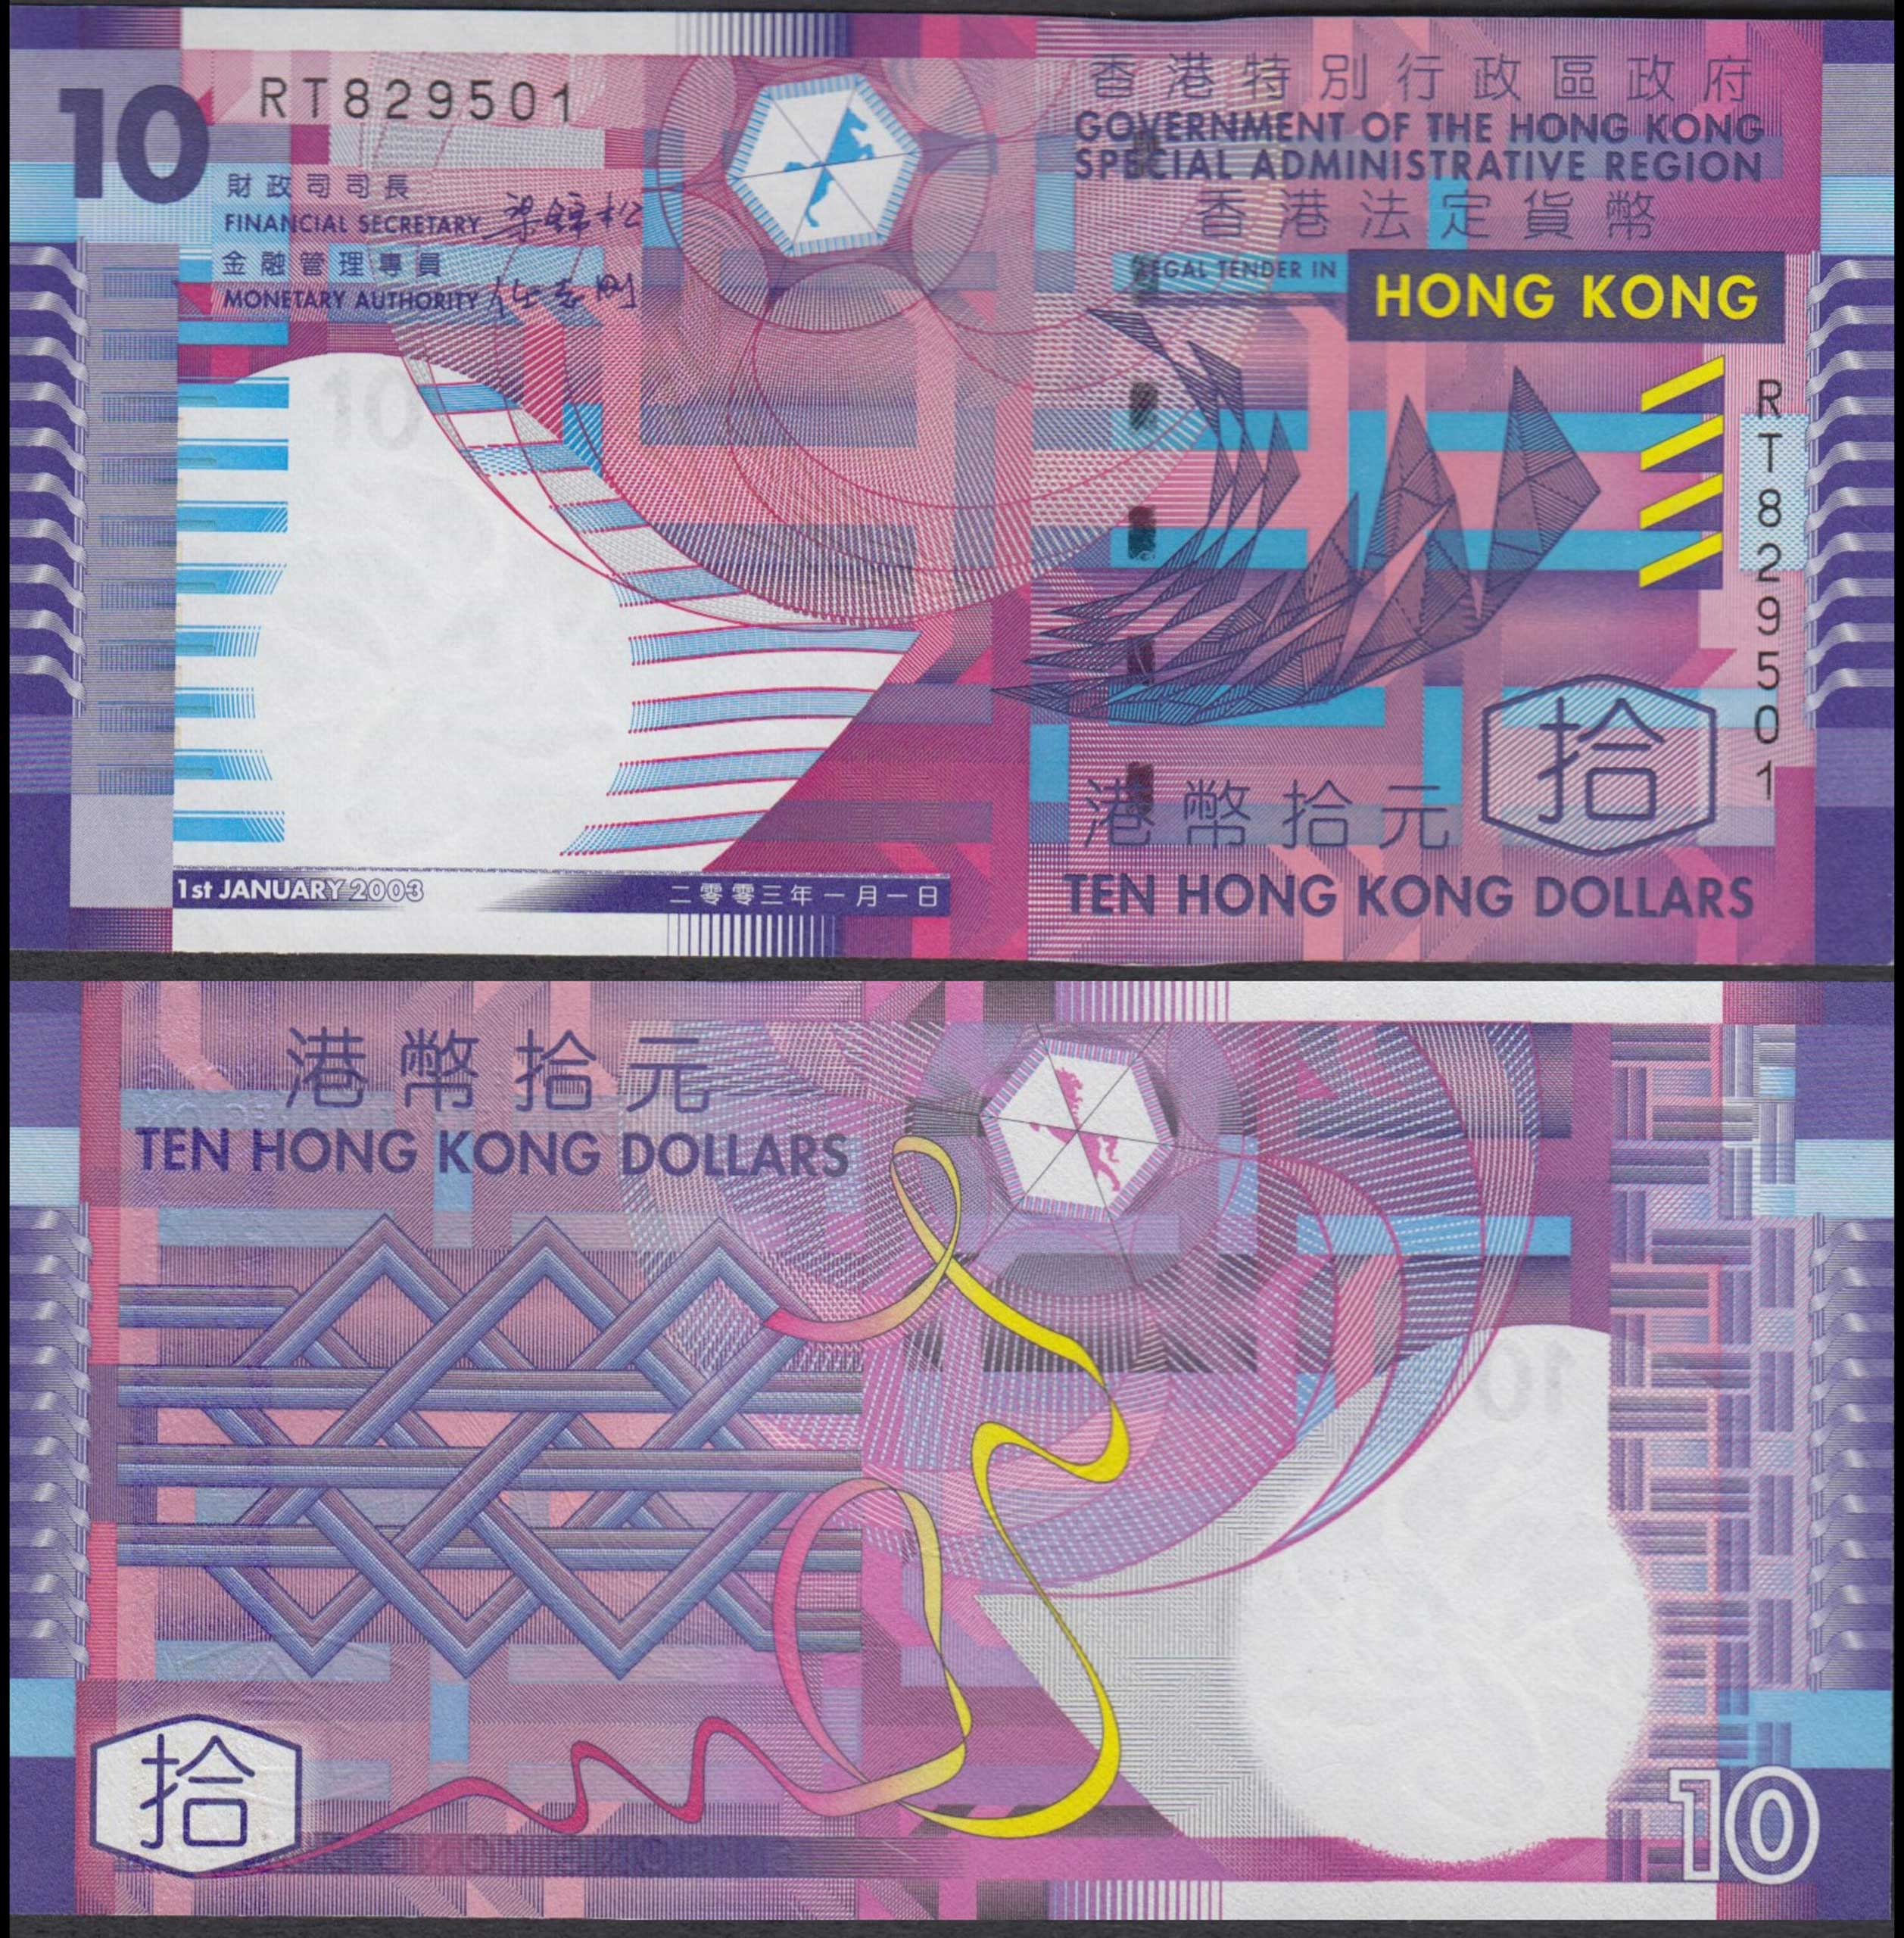 <strong>Hong Kong Dollar</strong>